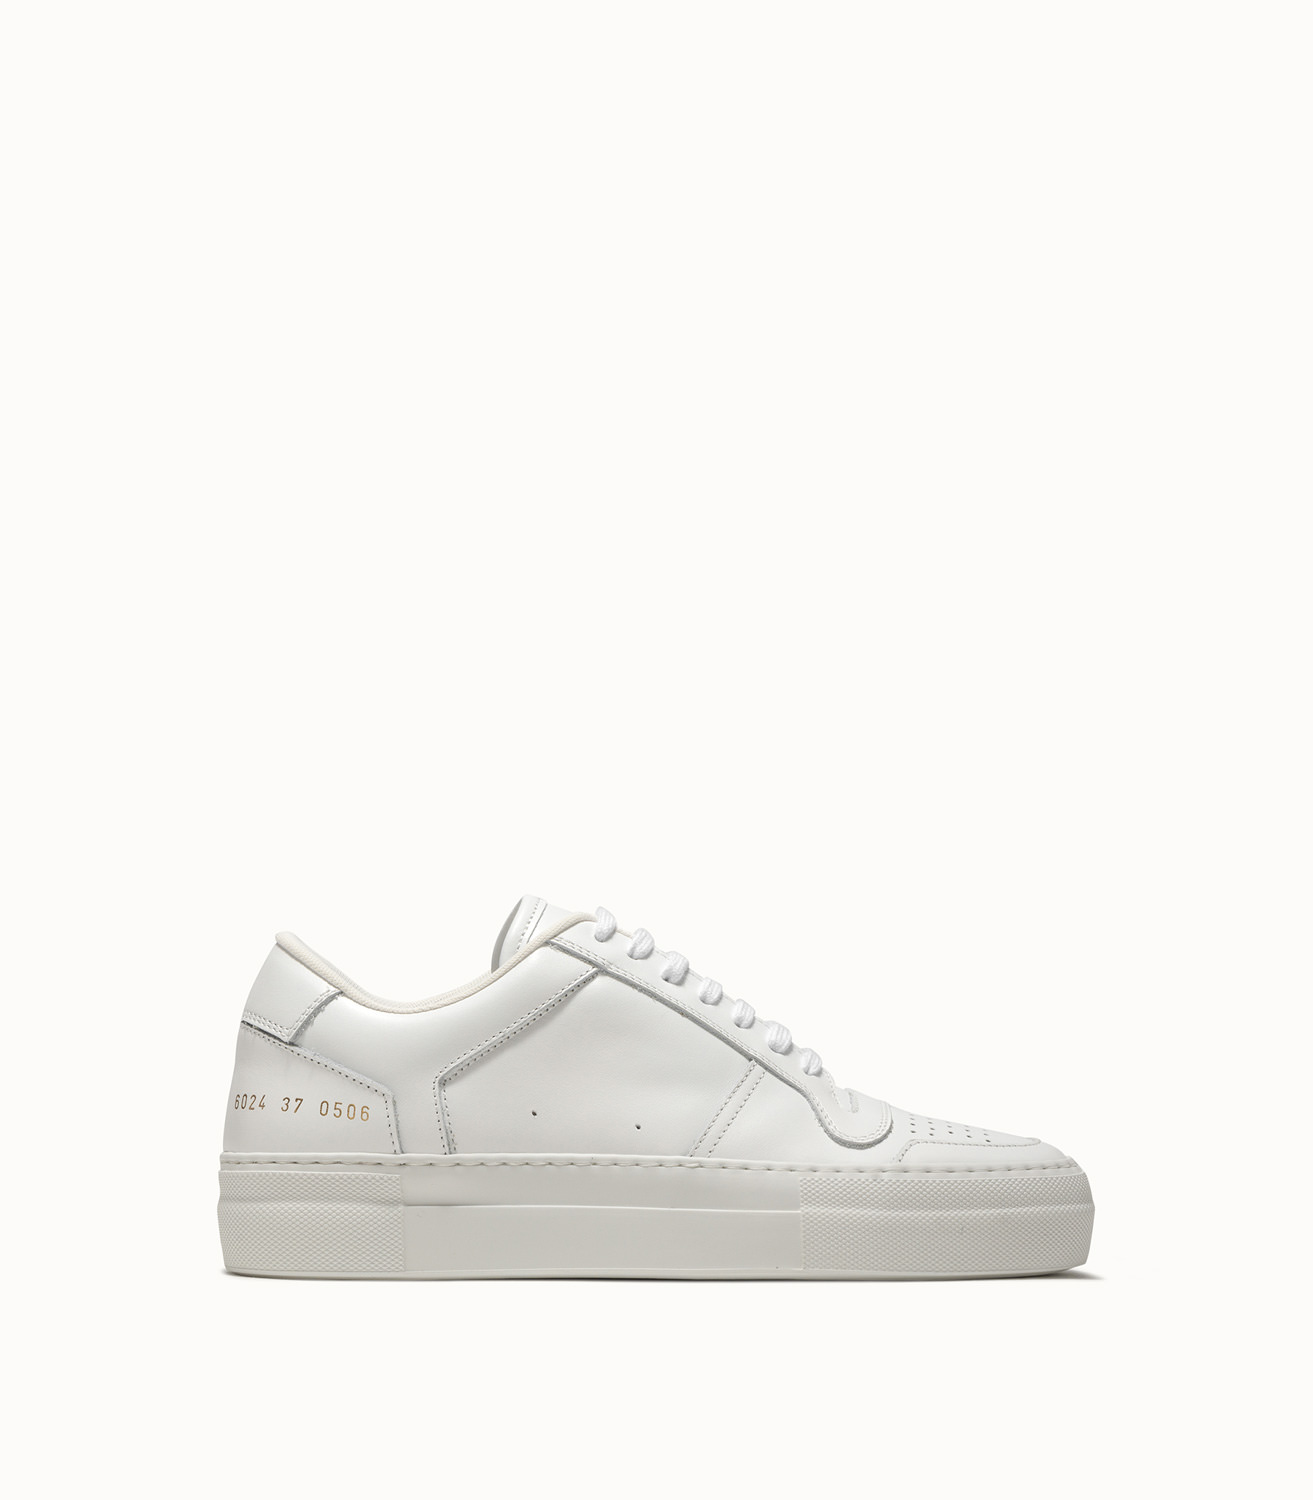 COMMON PROJECTS FULL COURT SNEAKERS